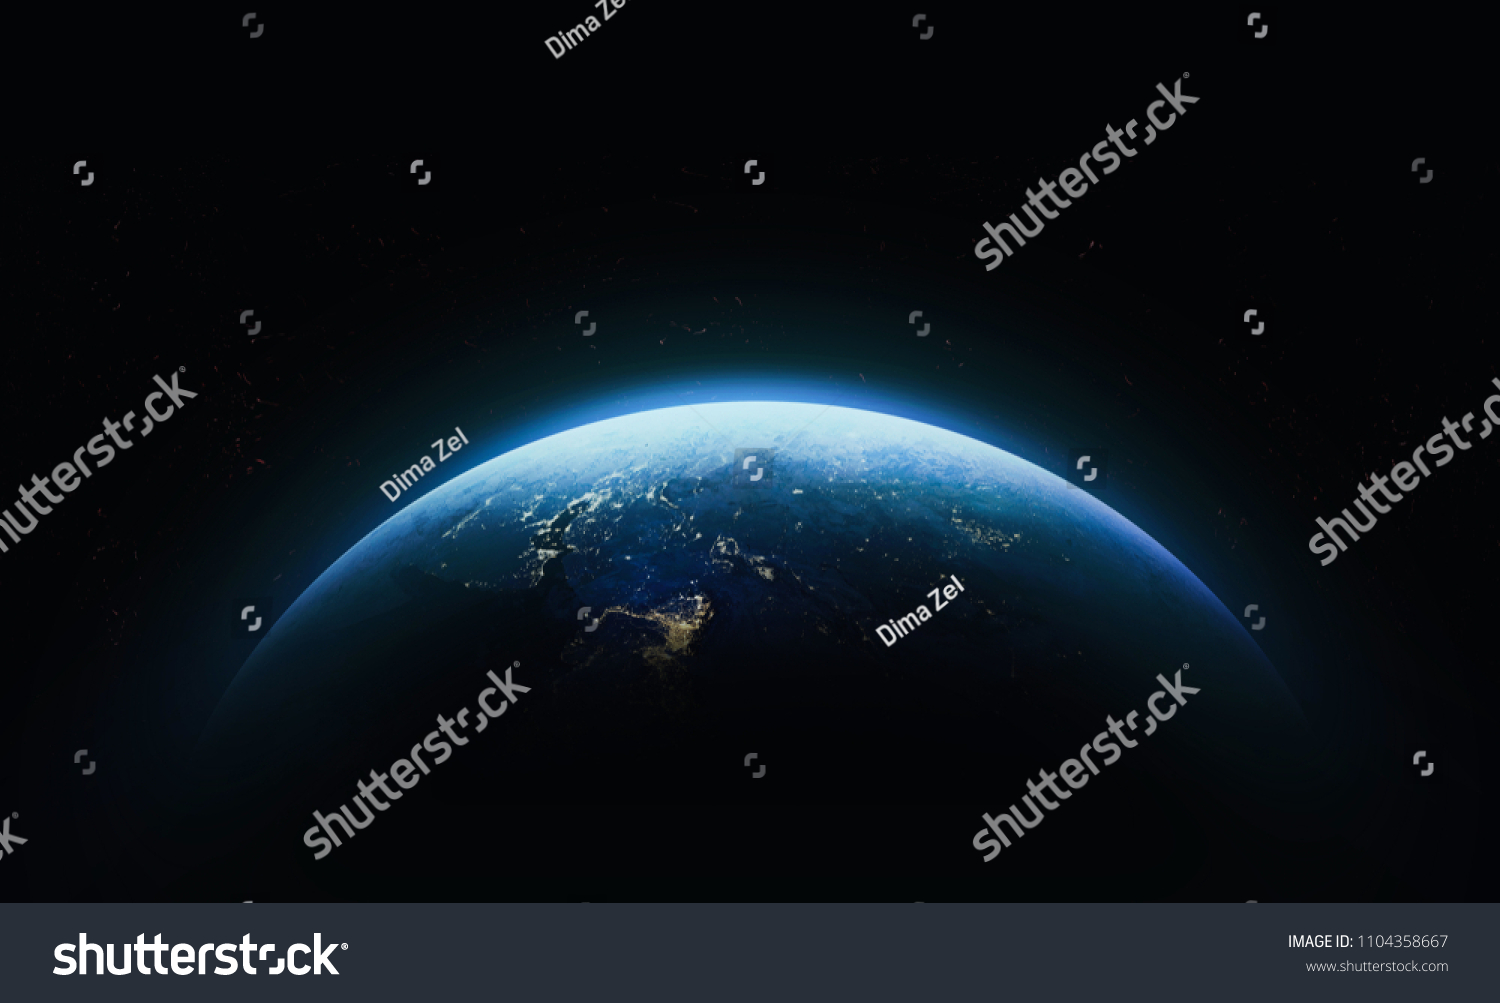 Nightly Earth in the outer space. Abstract wallpaper. City lights on planet. Civilization. Elements of this image furnished by NASA #1104358667